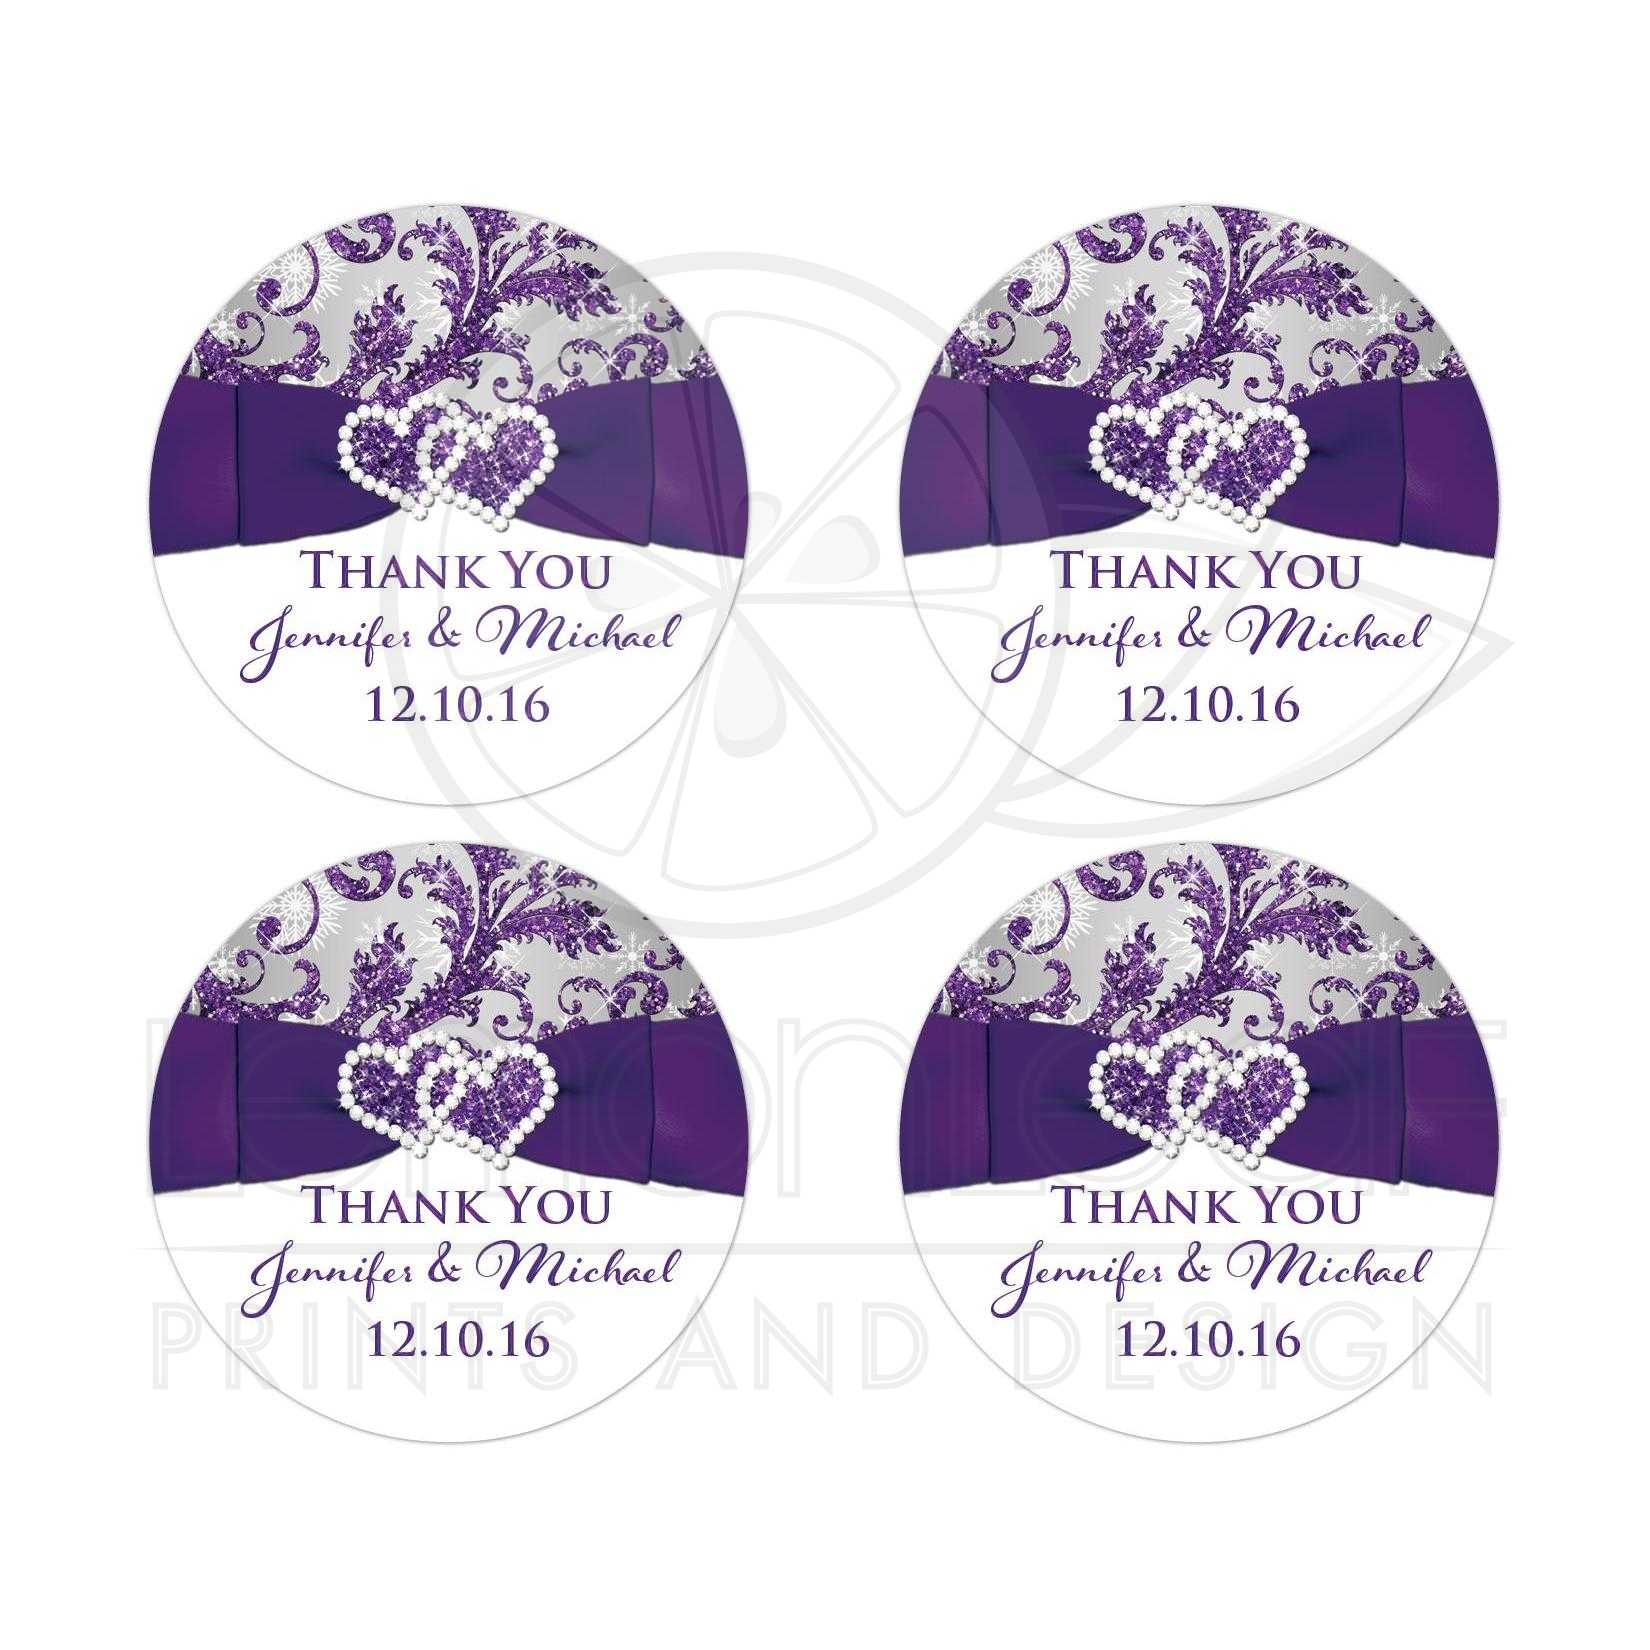 label stickers wedding - Redbul.energystandardinternational.co